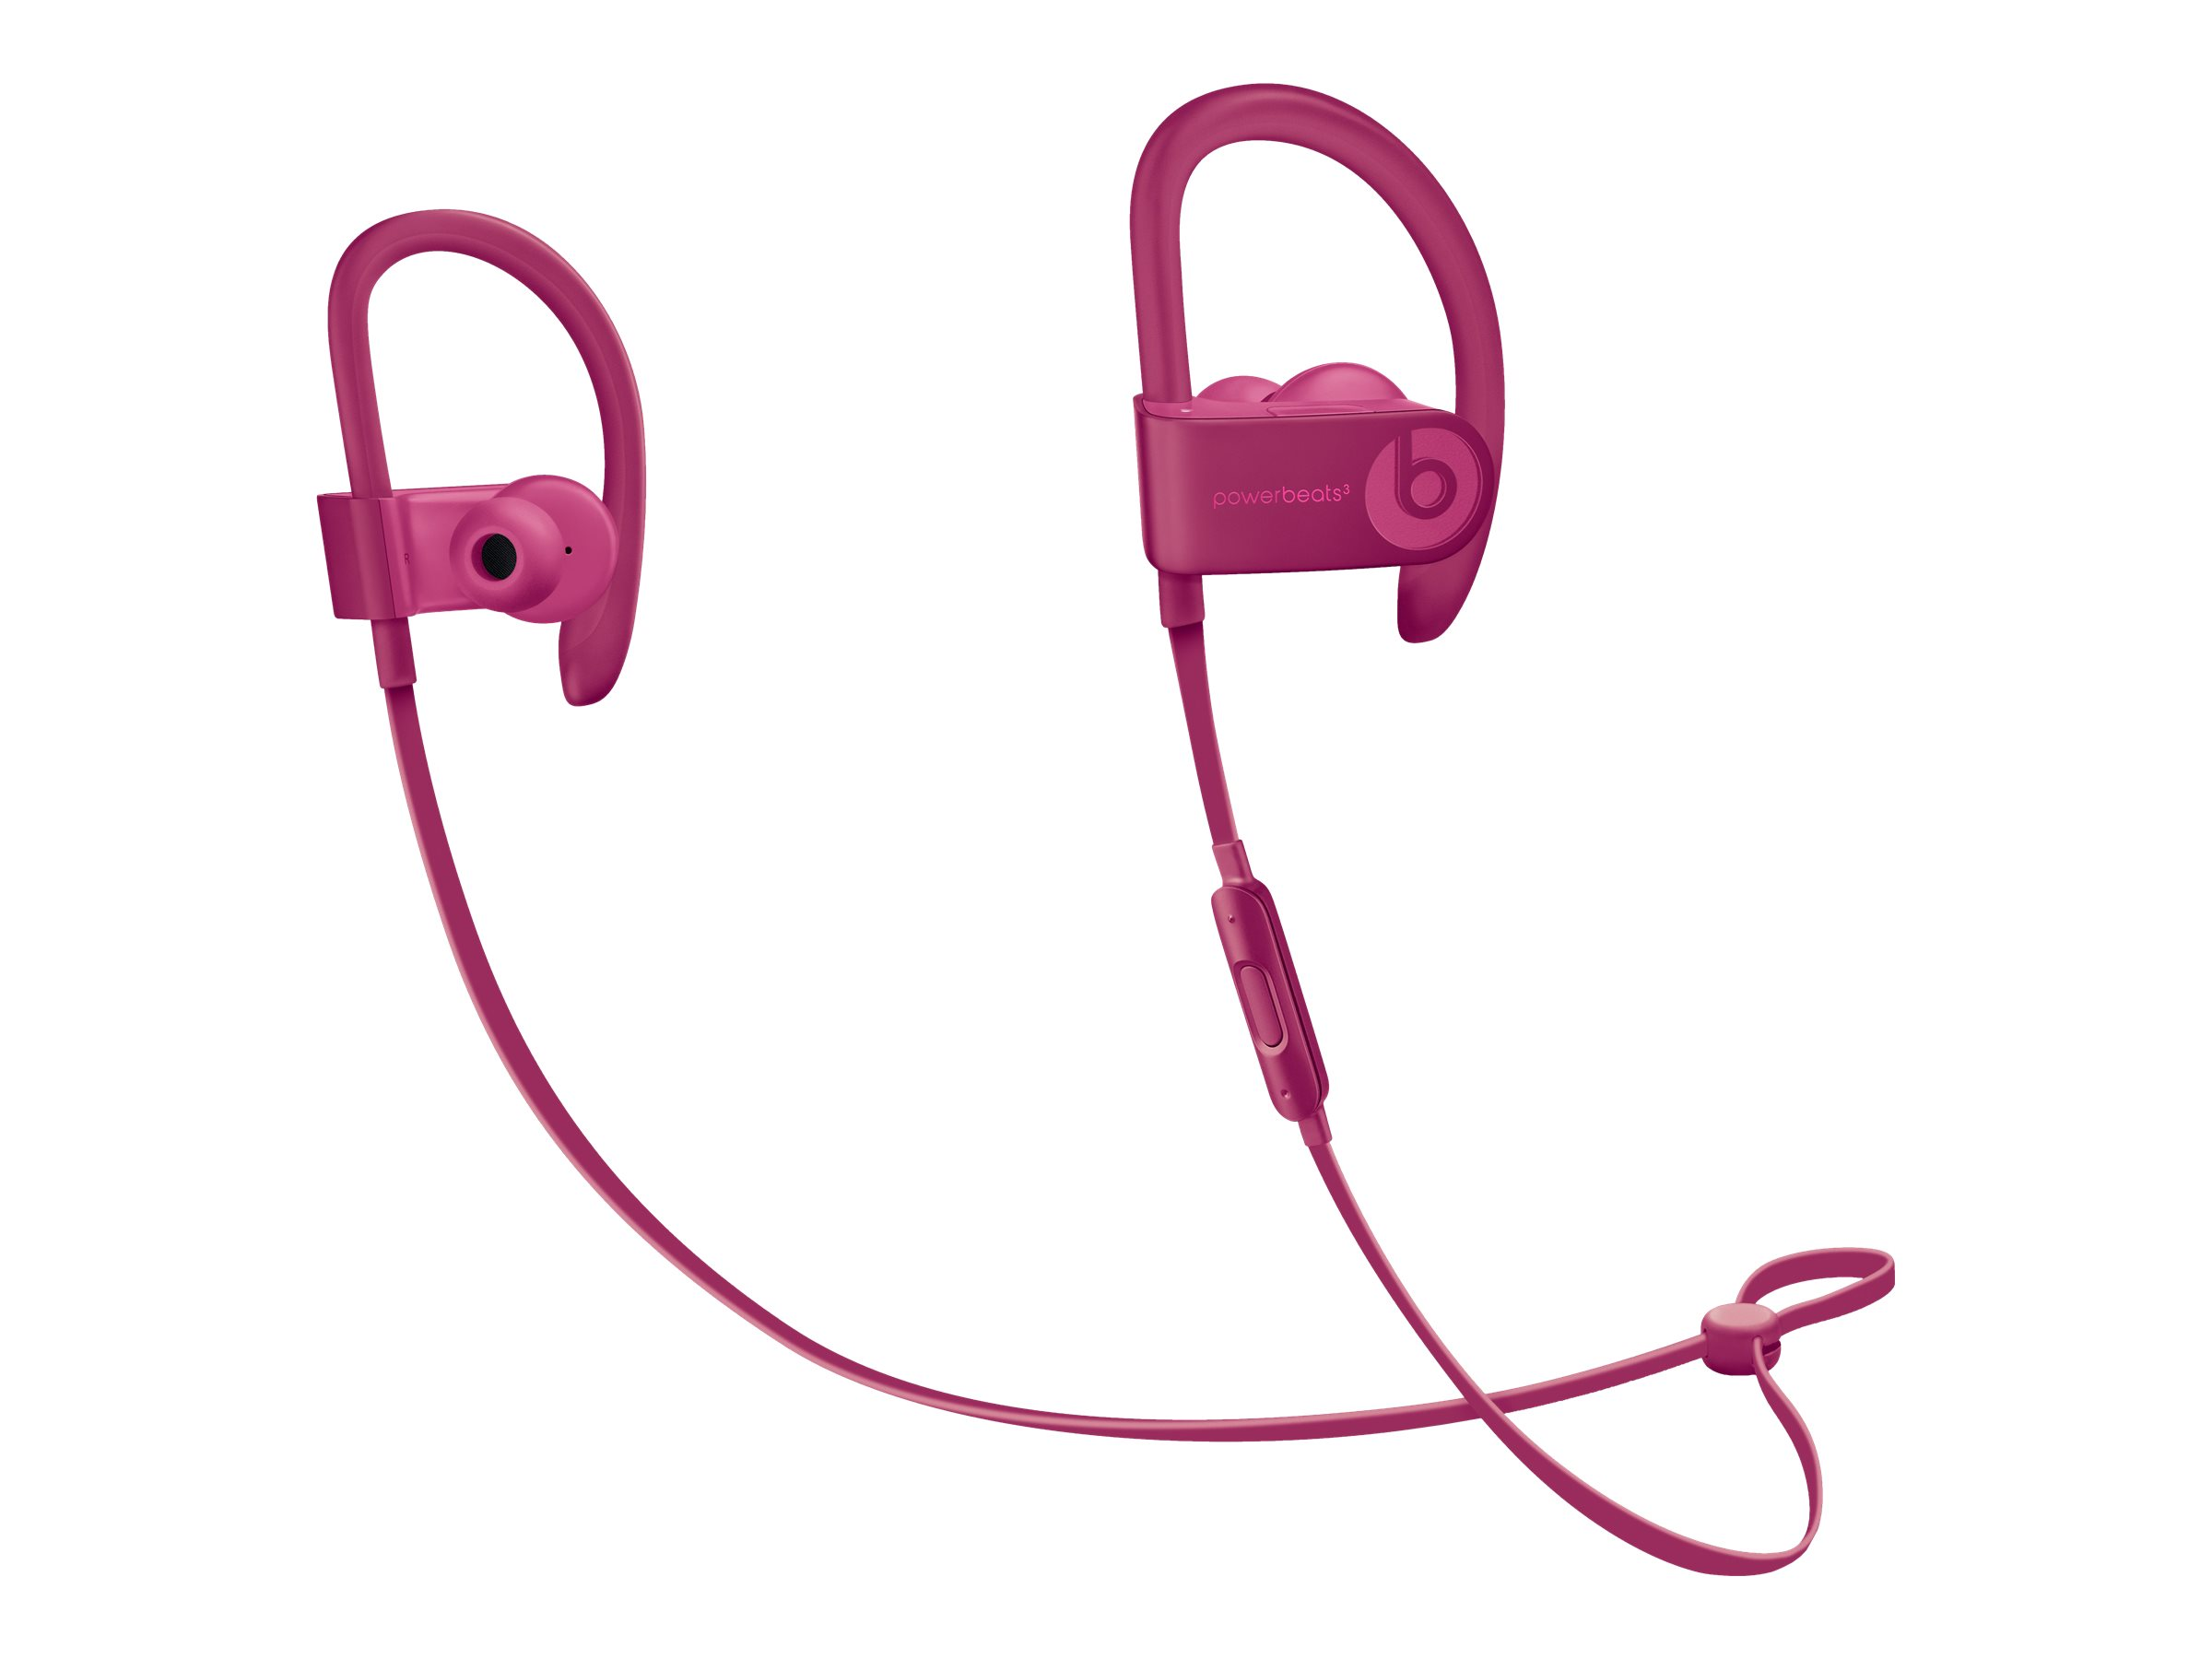 Beats Powerbeats3 Neighborhood Collection Earphones With Mic In Ear Over The Ear Mount Bluetooth Wireless Noise Isolating Brick Red For 10 5 Inch Ipad Pro 12 9 Inch Ipad Pro